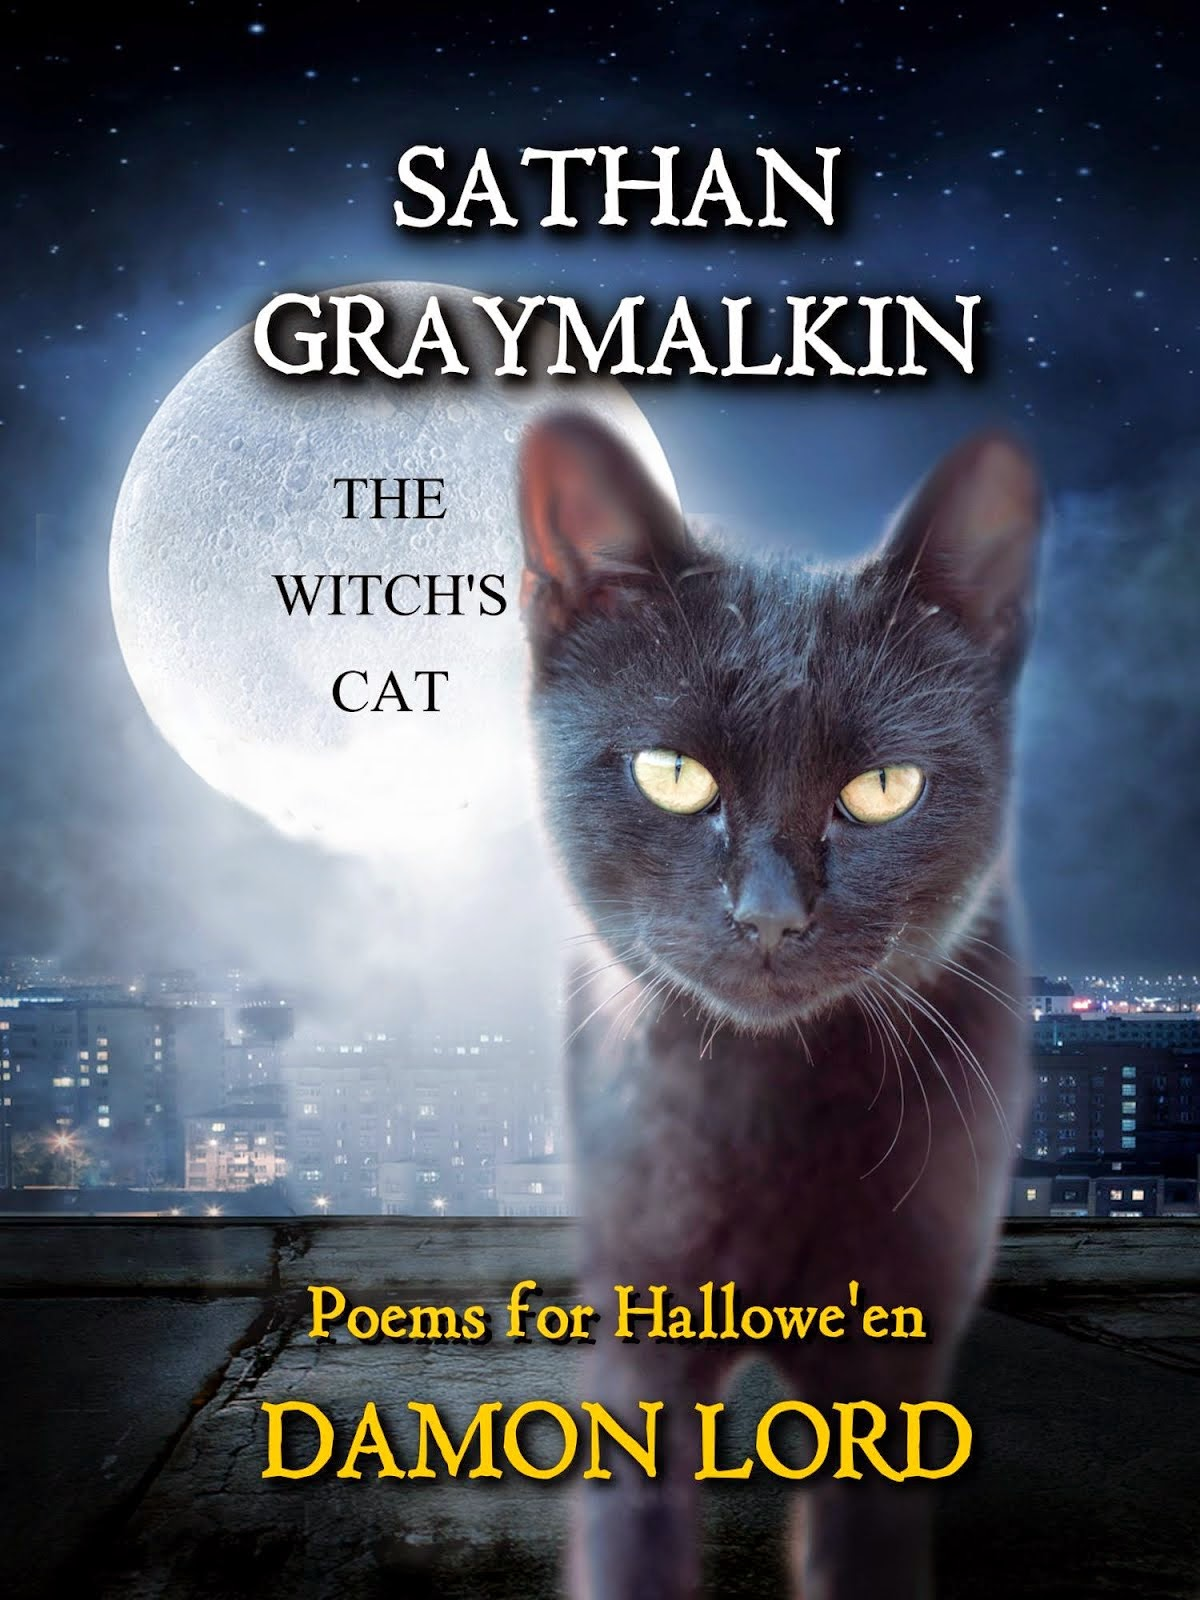 Sathan Graymalkin the Witch's Cat